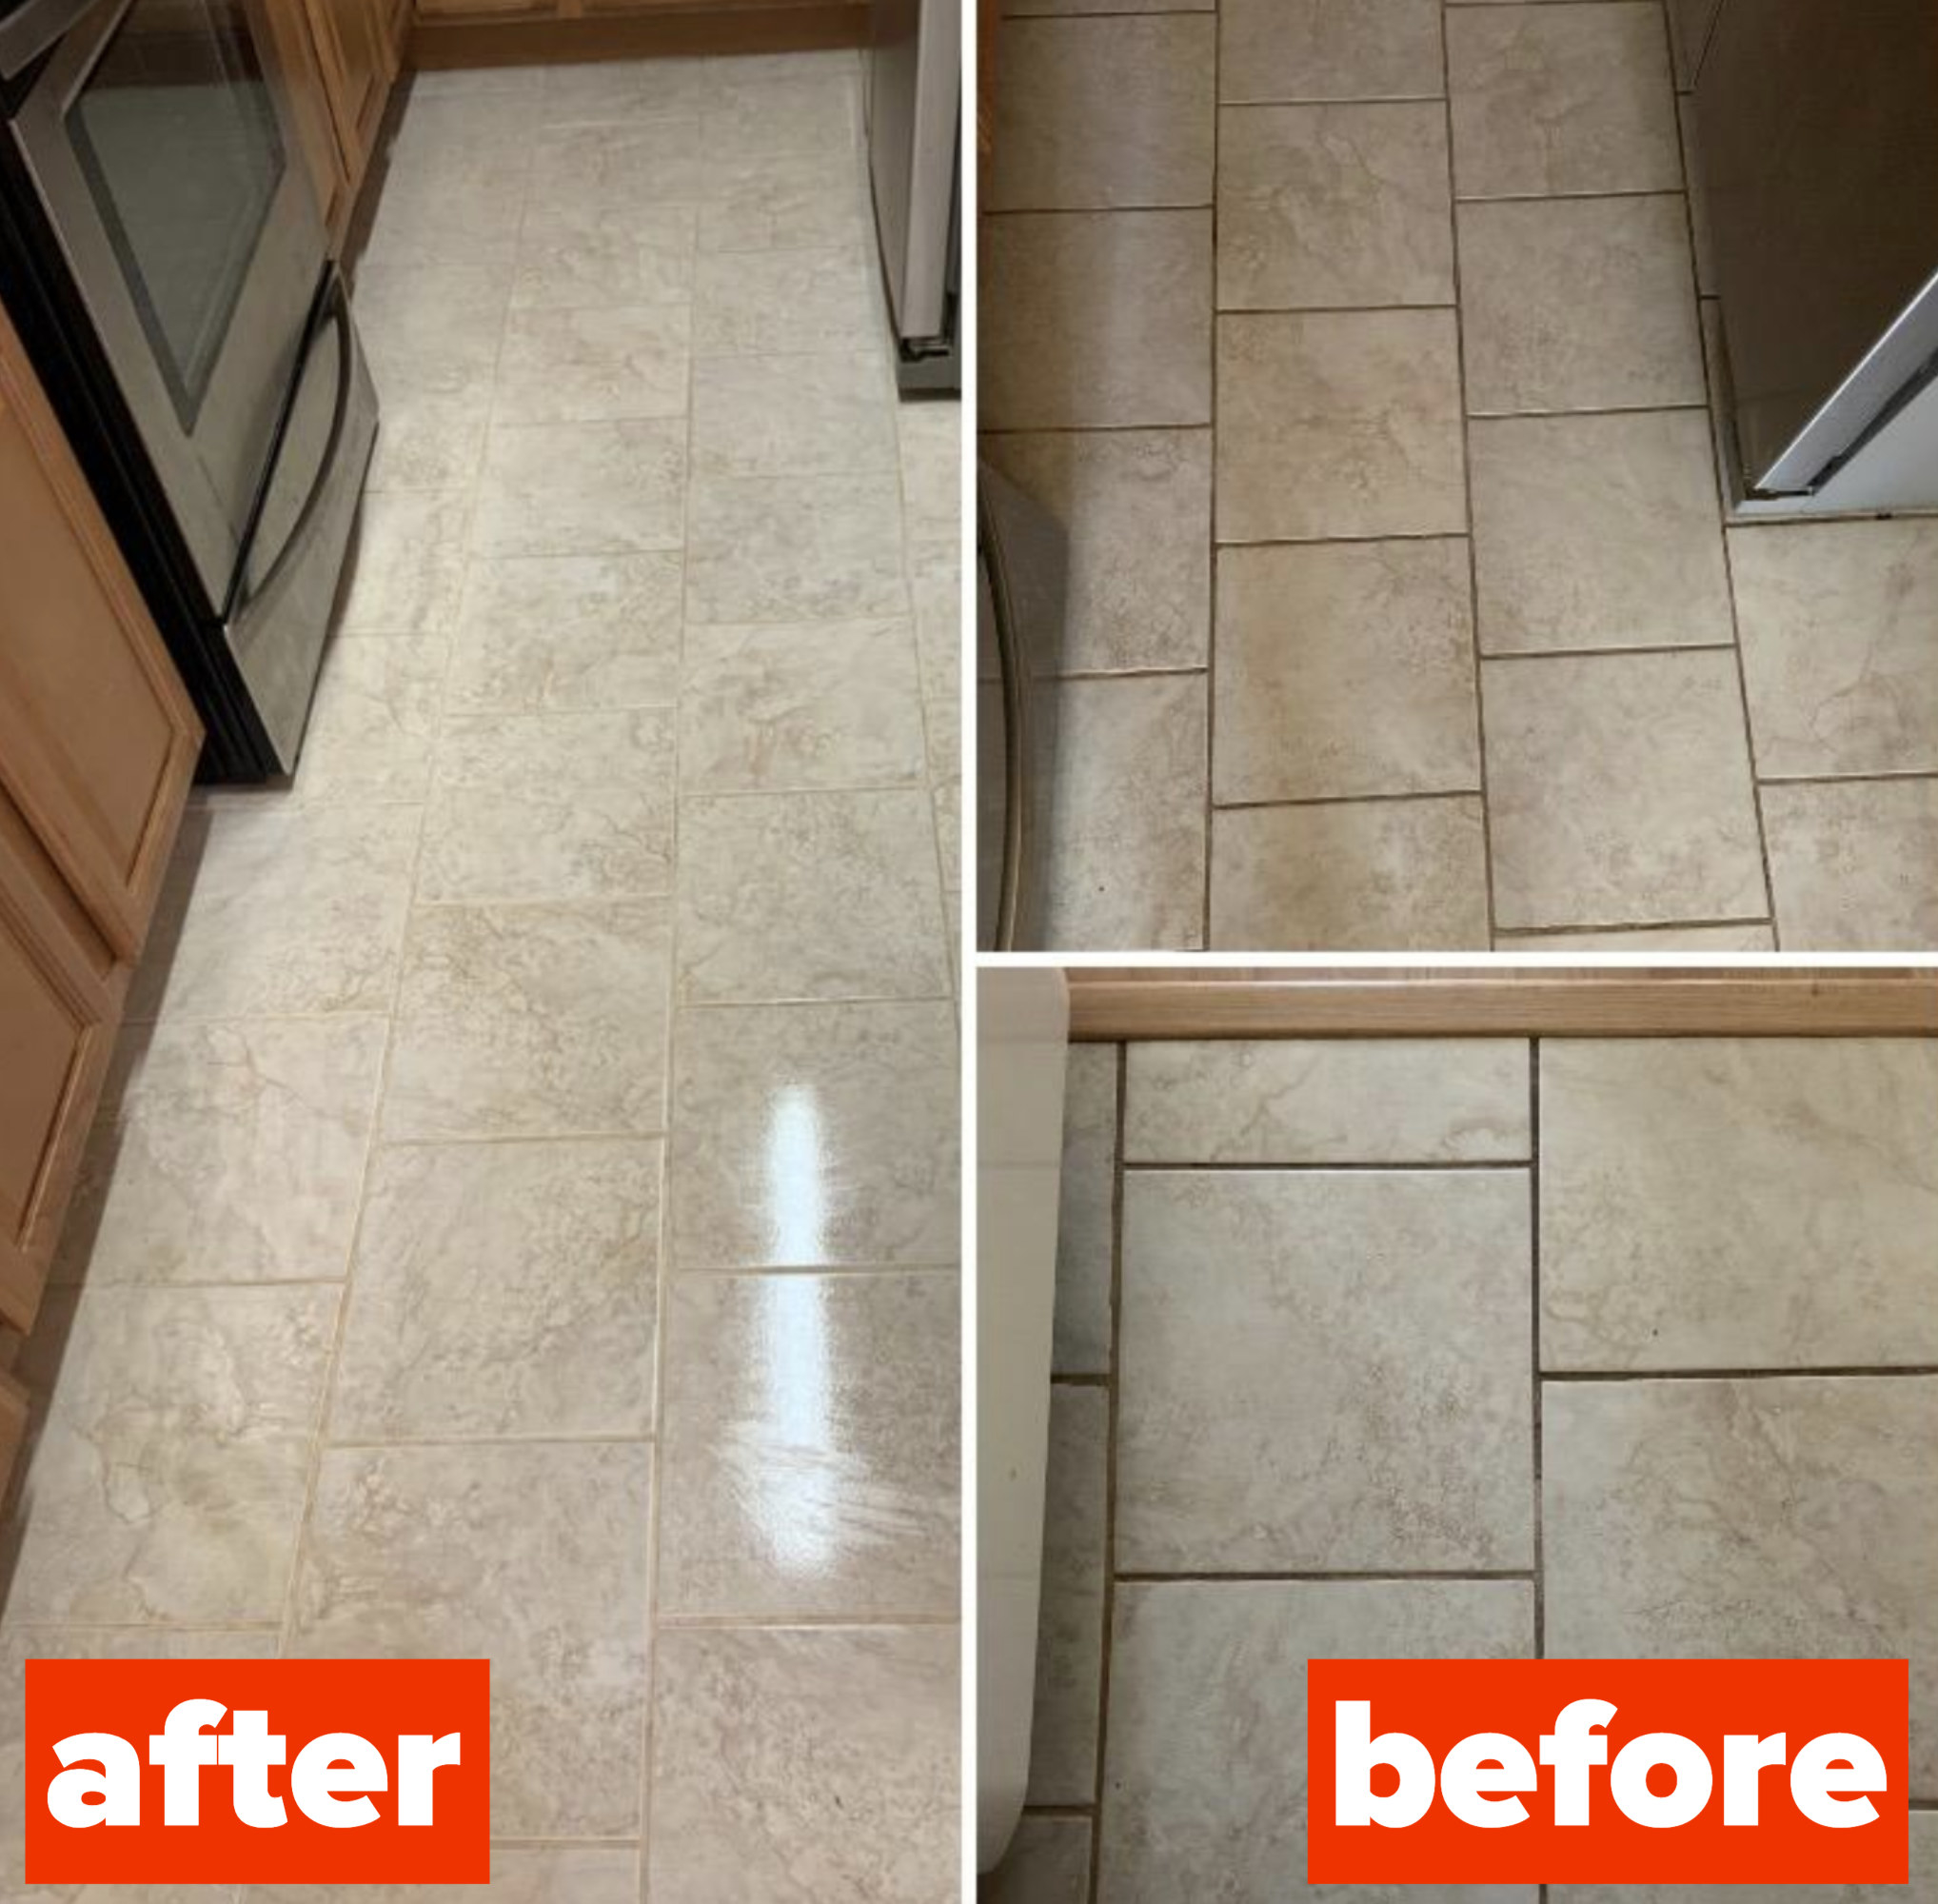 home cleaning products with before and